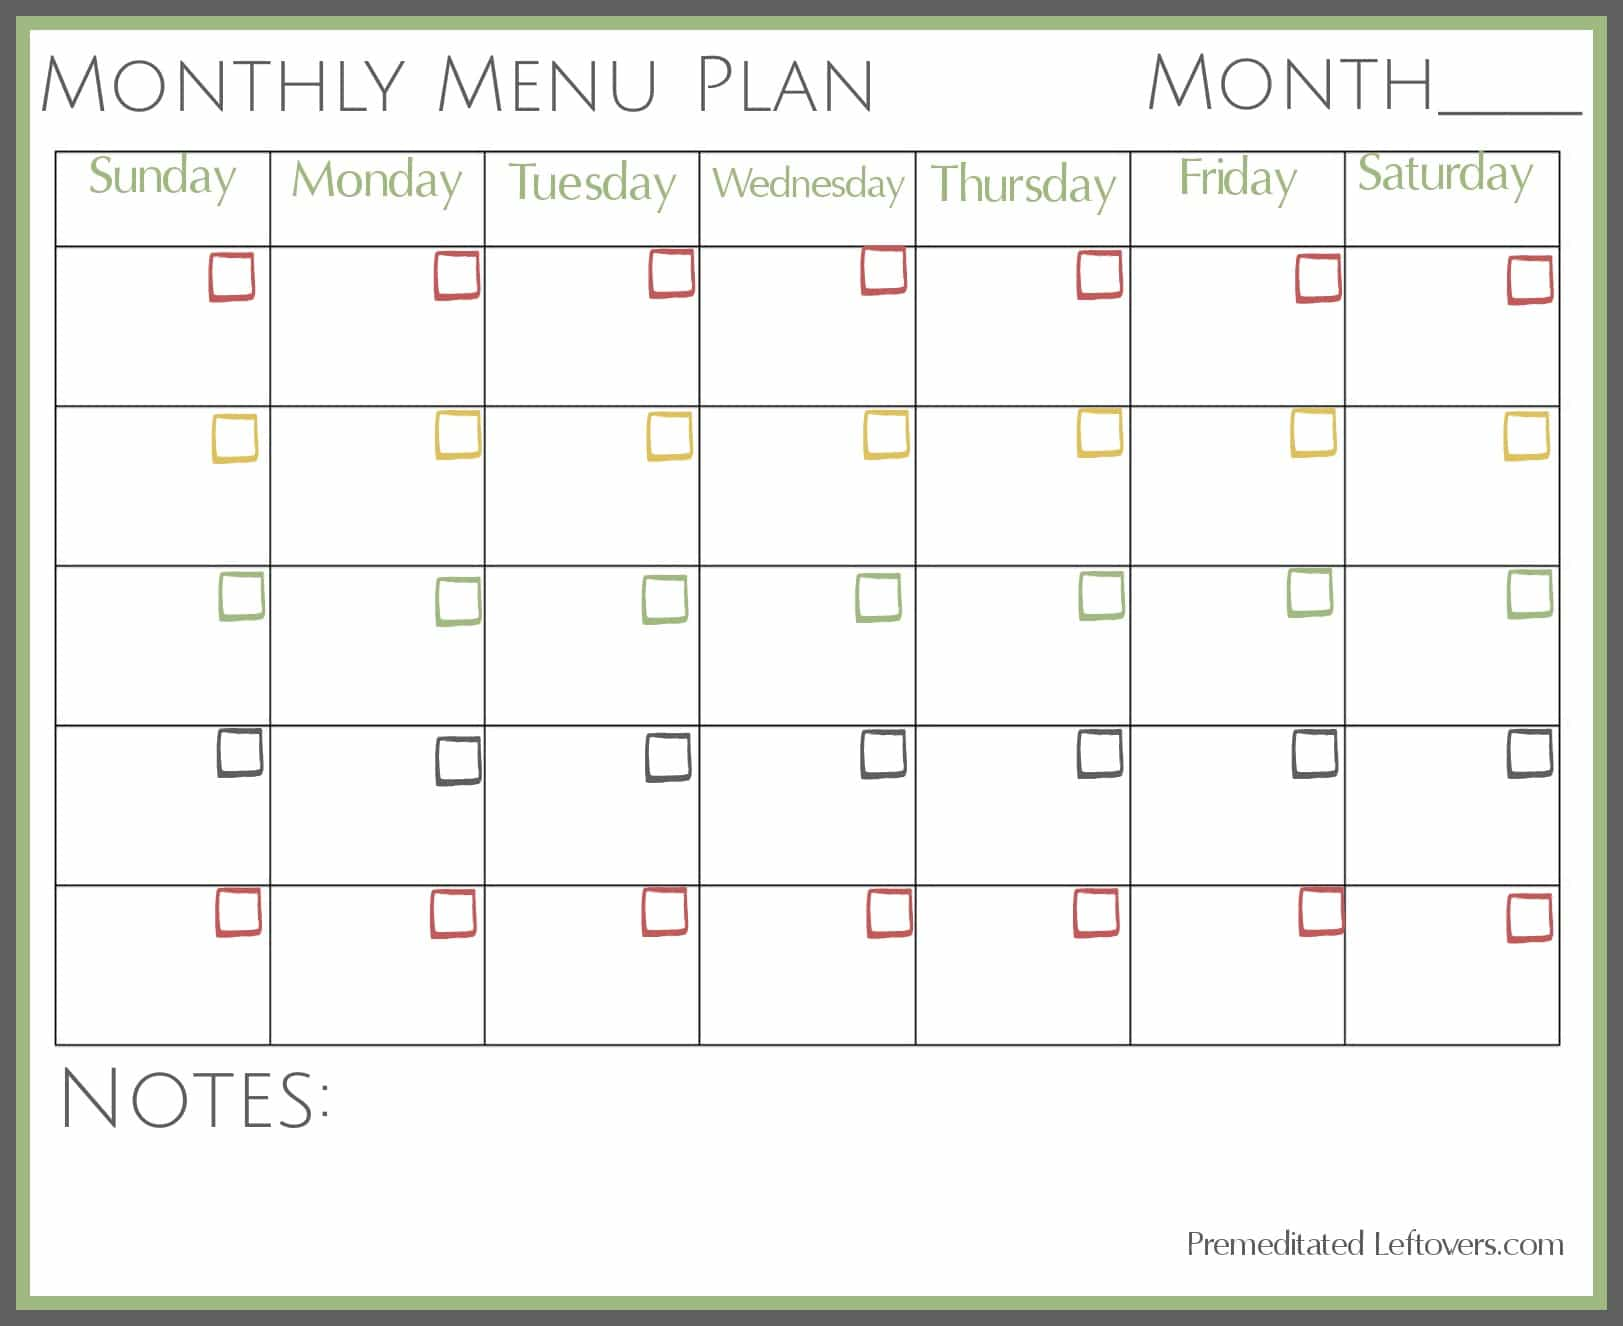 Free Printables from Premeditated Leftovers